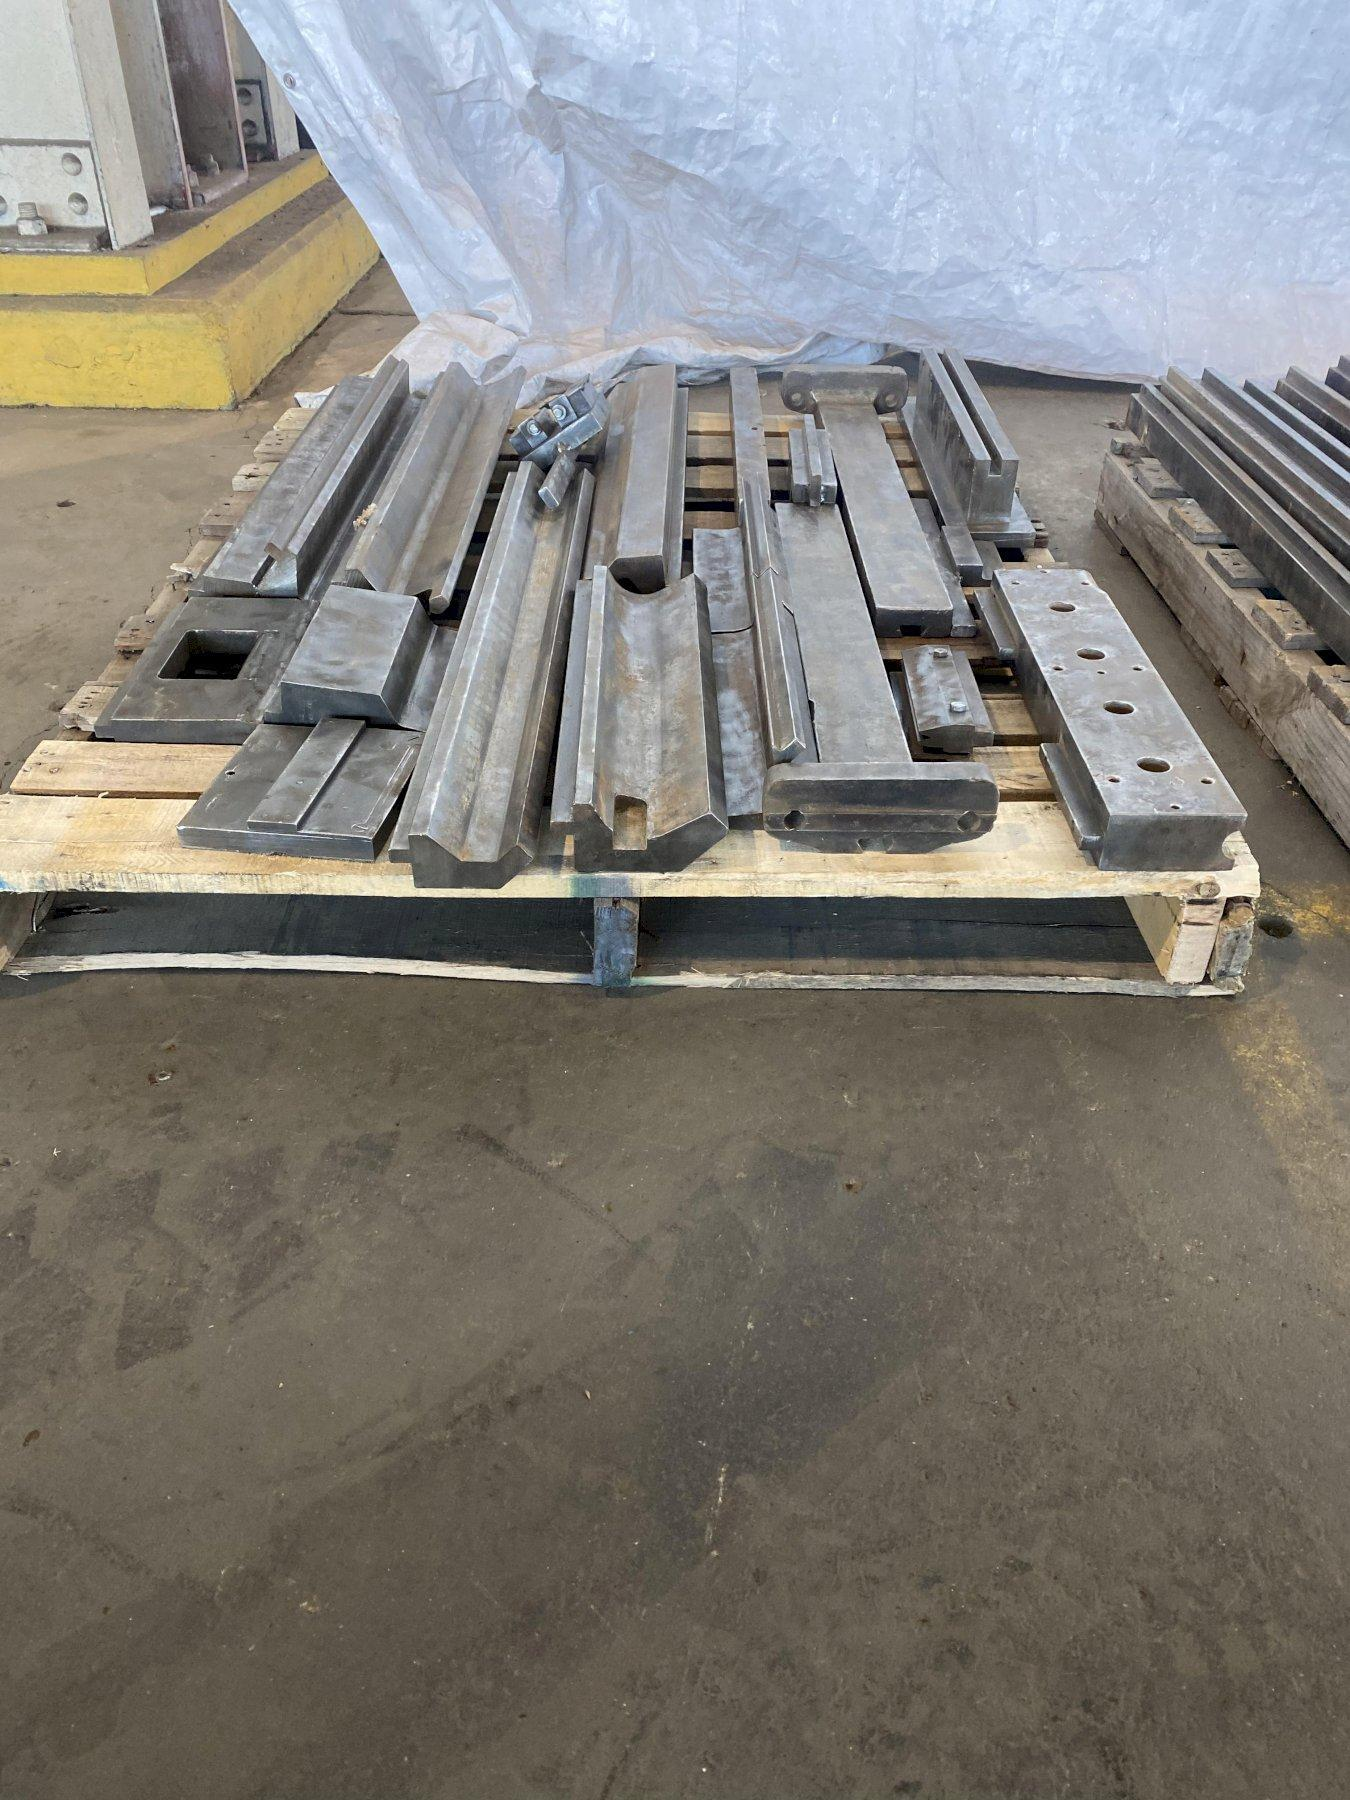 PRESS BRAKE TOOLING ON PALLET. STOCK # 0206121